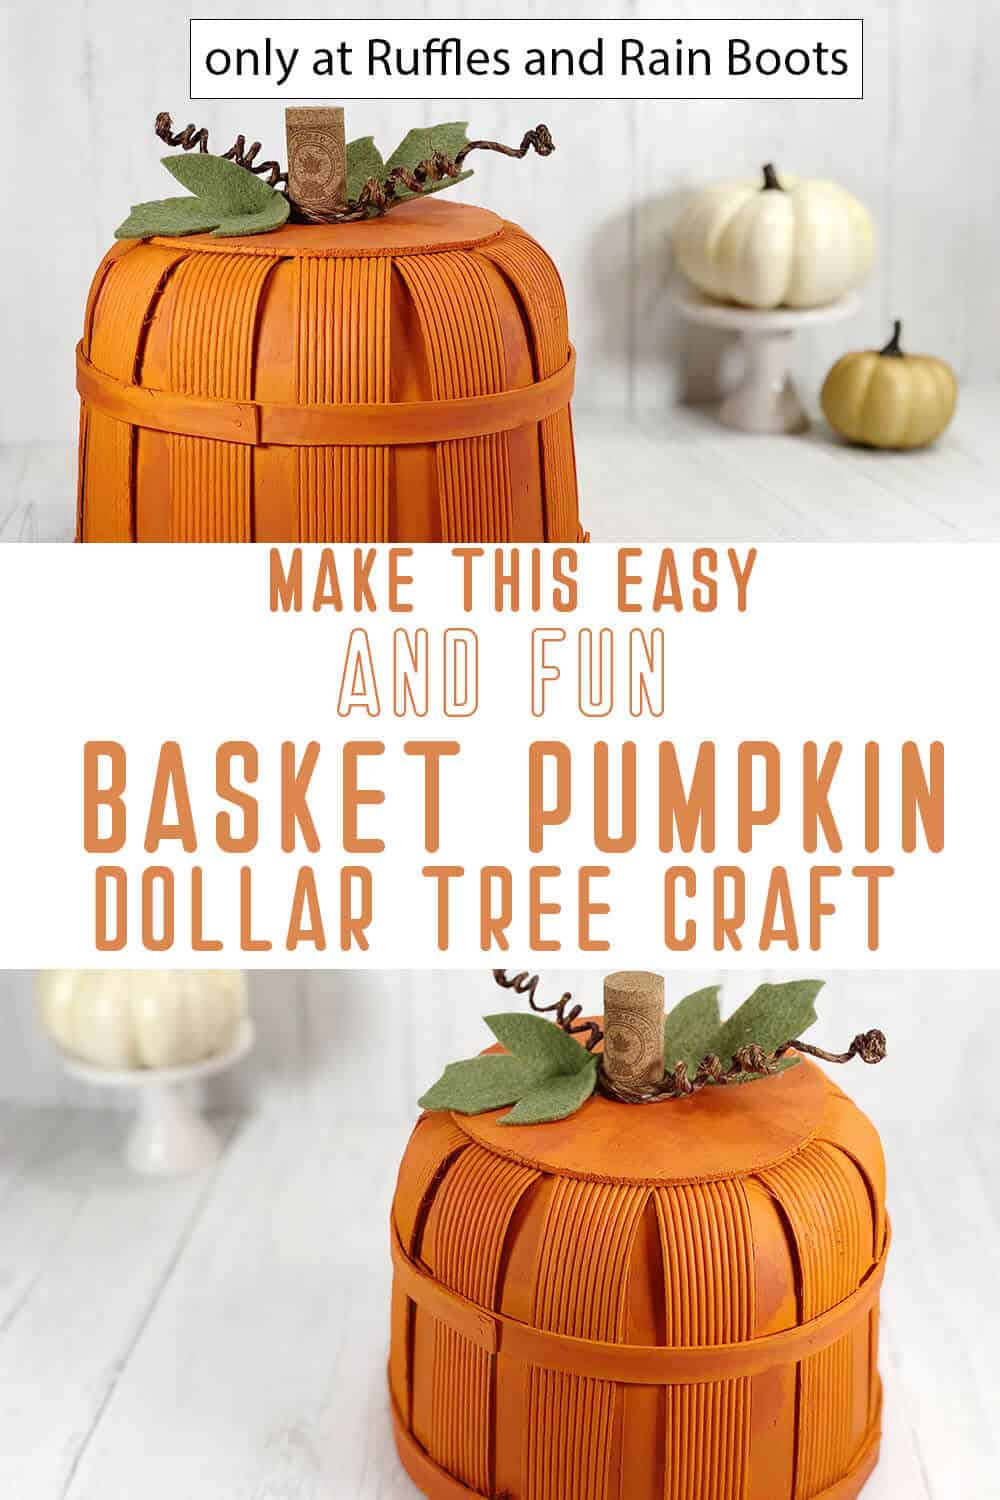 photo collage of dollar tree basket pumpkin diy with text which reads make this easy and fun basket pumpkin dollar tree craft